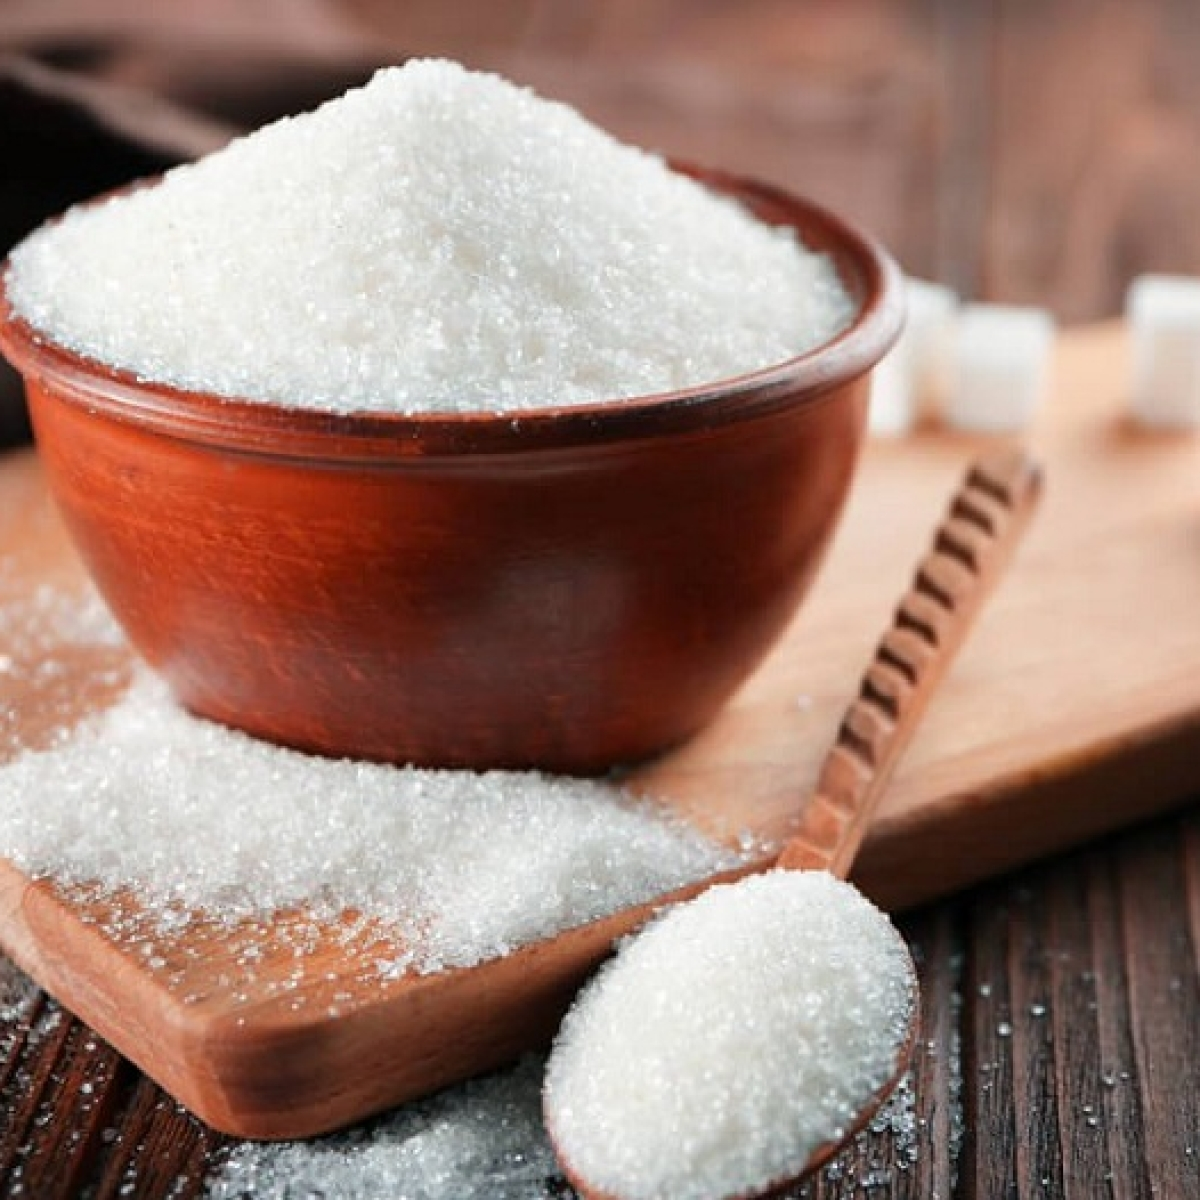 Excessive sugar consumption is harmful for heart health